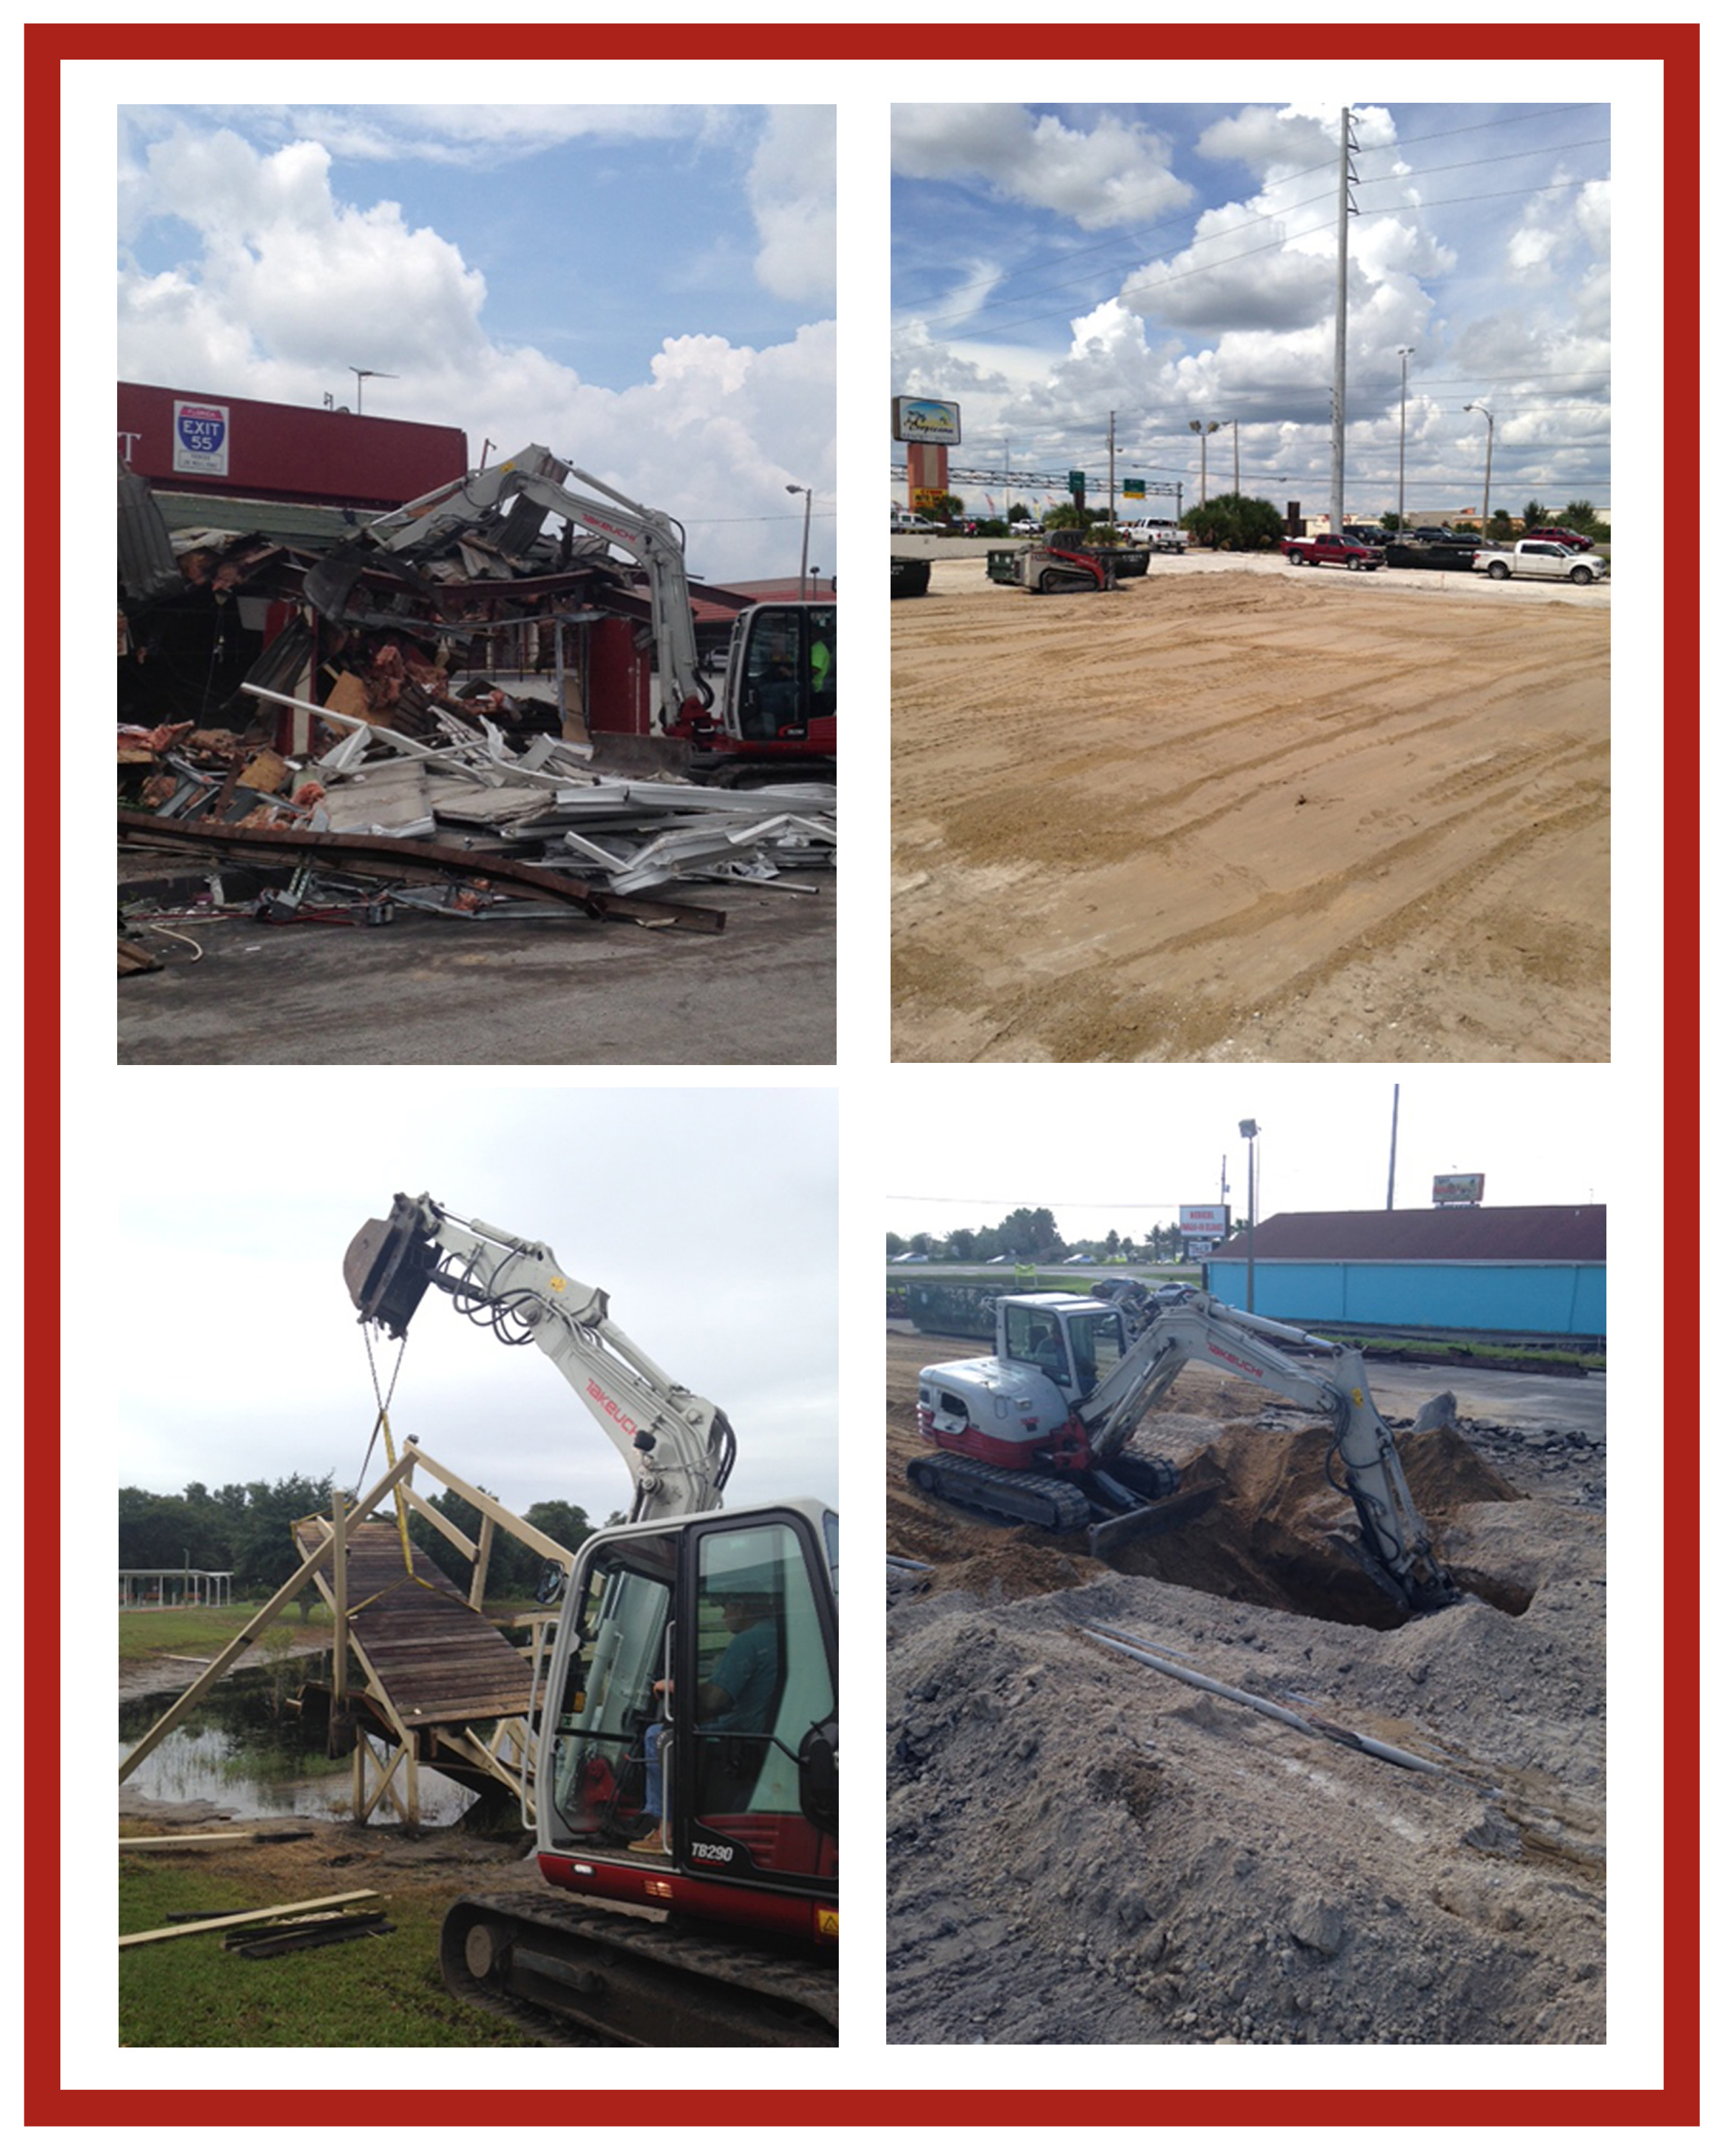 Total Demolition Services In Orlando, Fl 32812. Veterans Mortgage Assistance. Direct Mail Marketing Los Angeles. Dealers Auto Auction Of The Rockies. Health Technology Assessment. Bradley Funeral Home Penndel. Auto Insurance Compare Prices. Scriptures On Depression Buy Junk Cars Dallas. Translation Services Nj Truck Driver Software